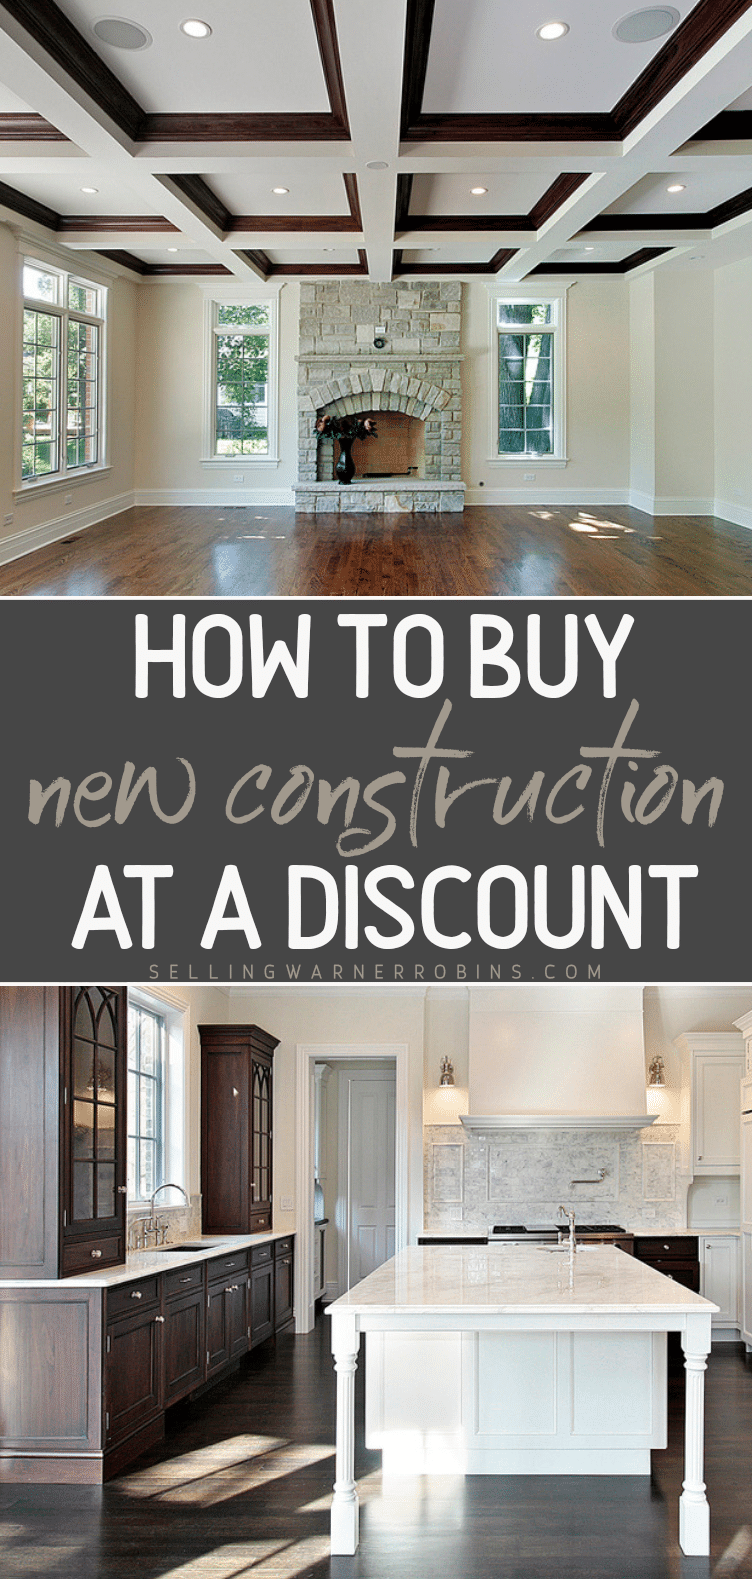 How to Buy New Construction at a Discount